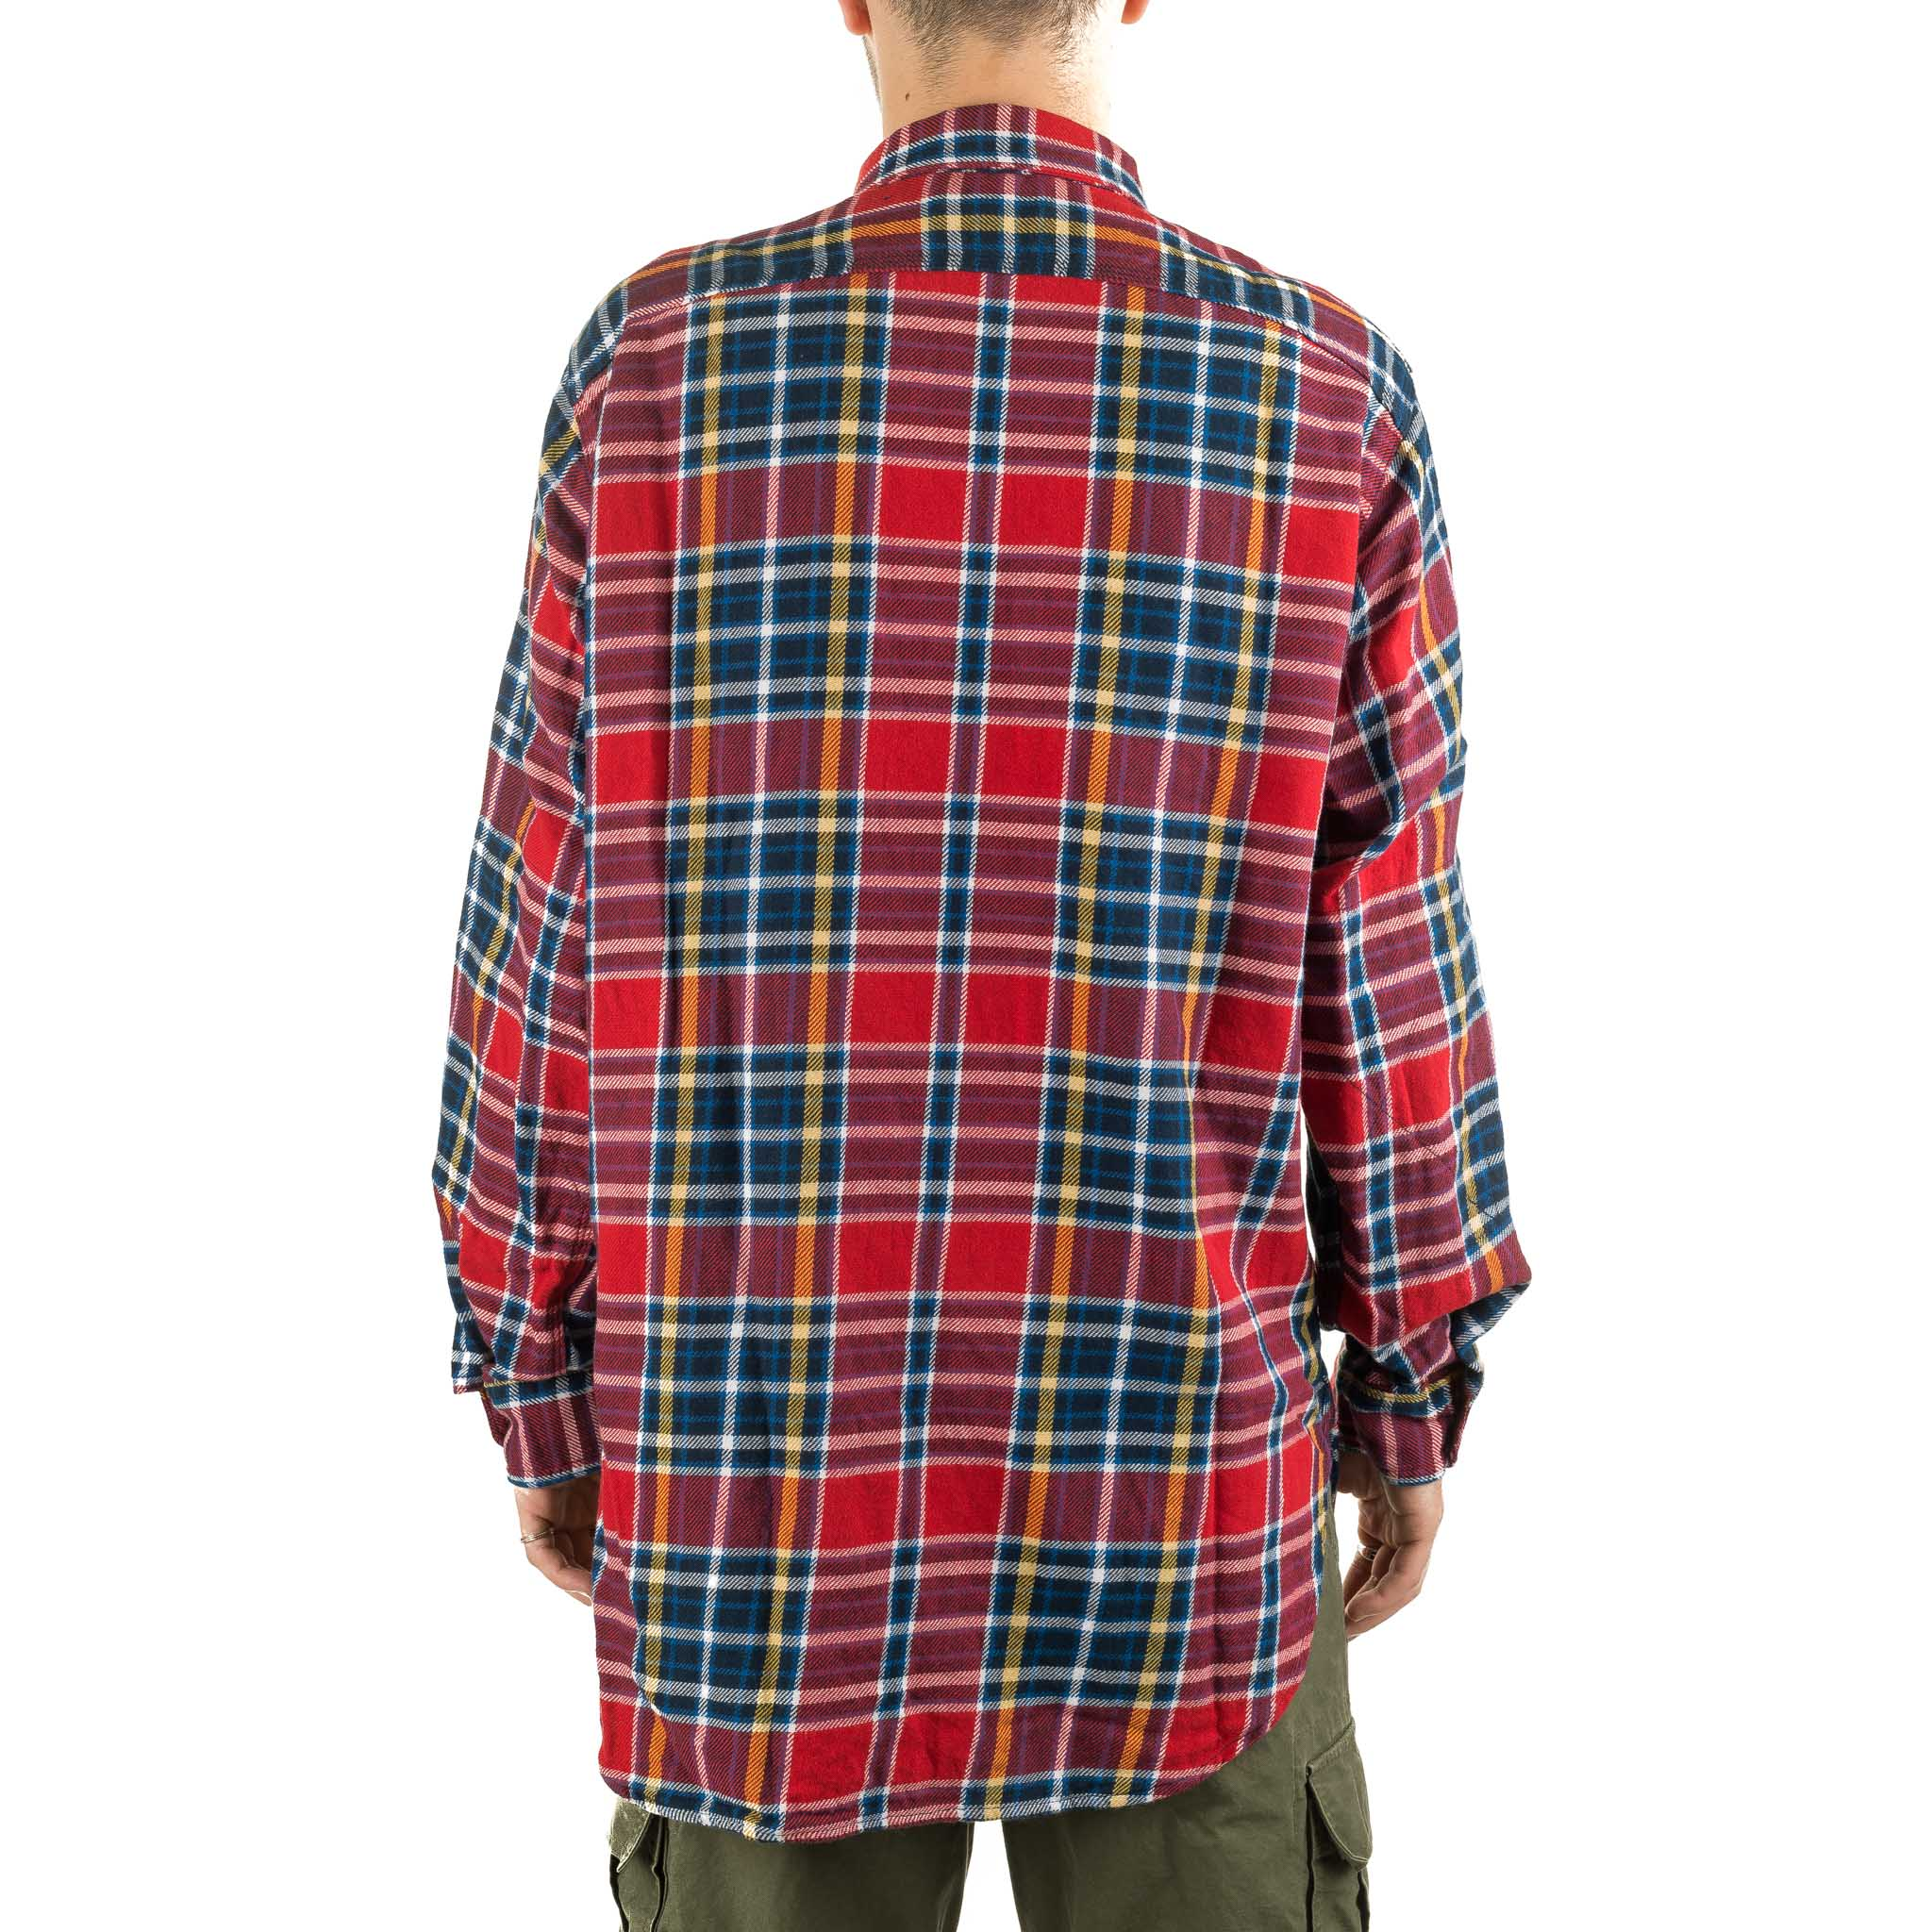 Work Shirt Twill Plaid 19FA007 Red/Navy